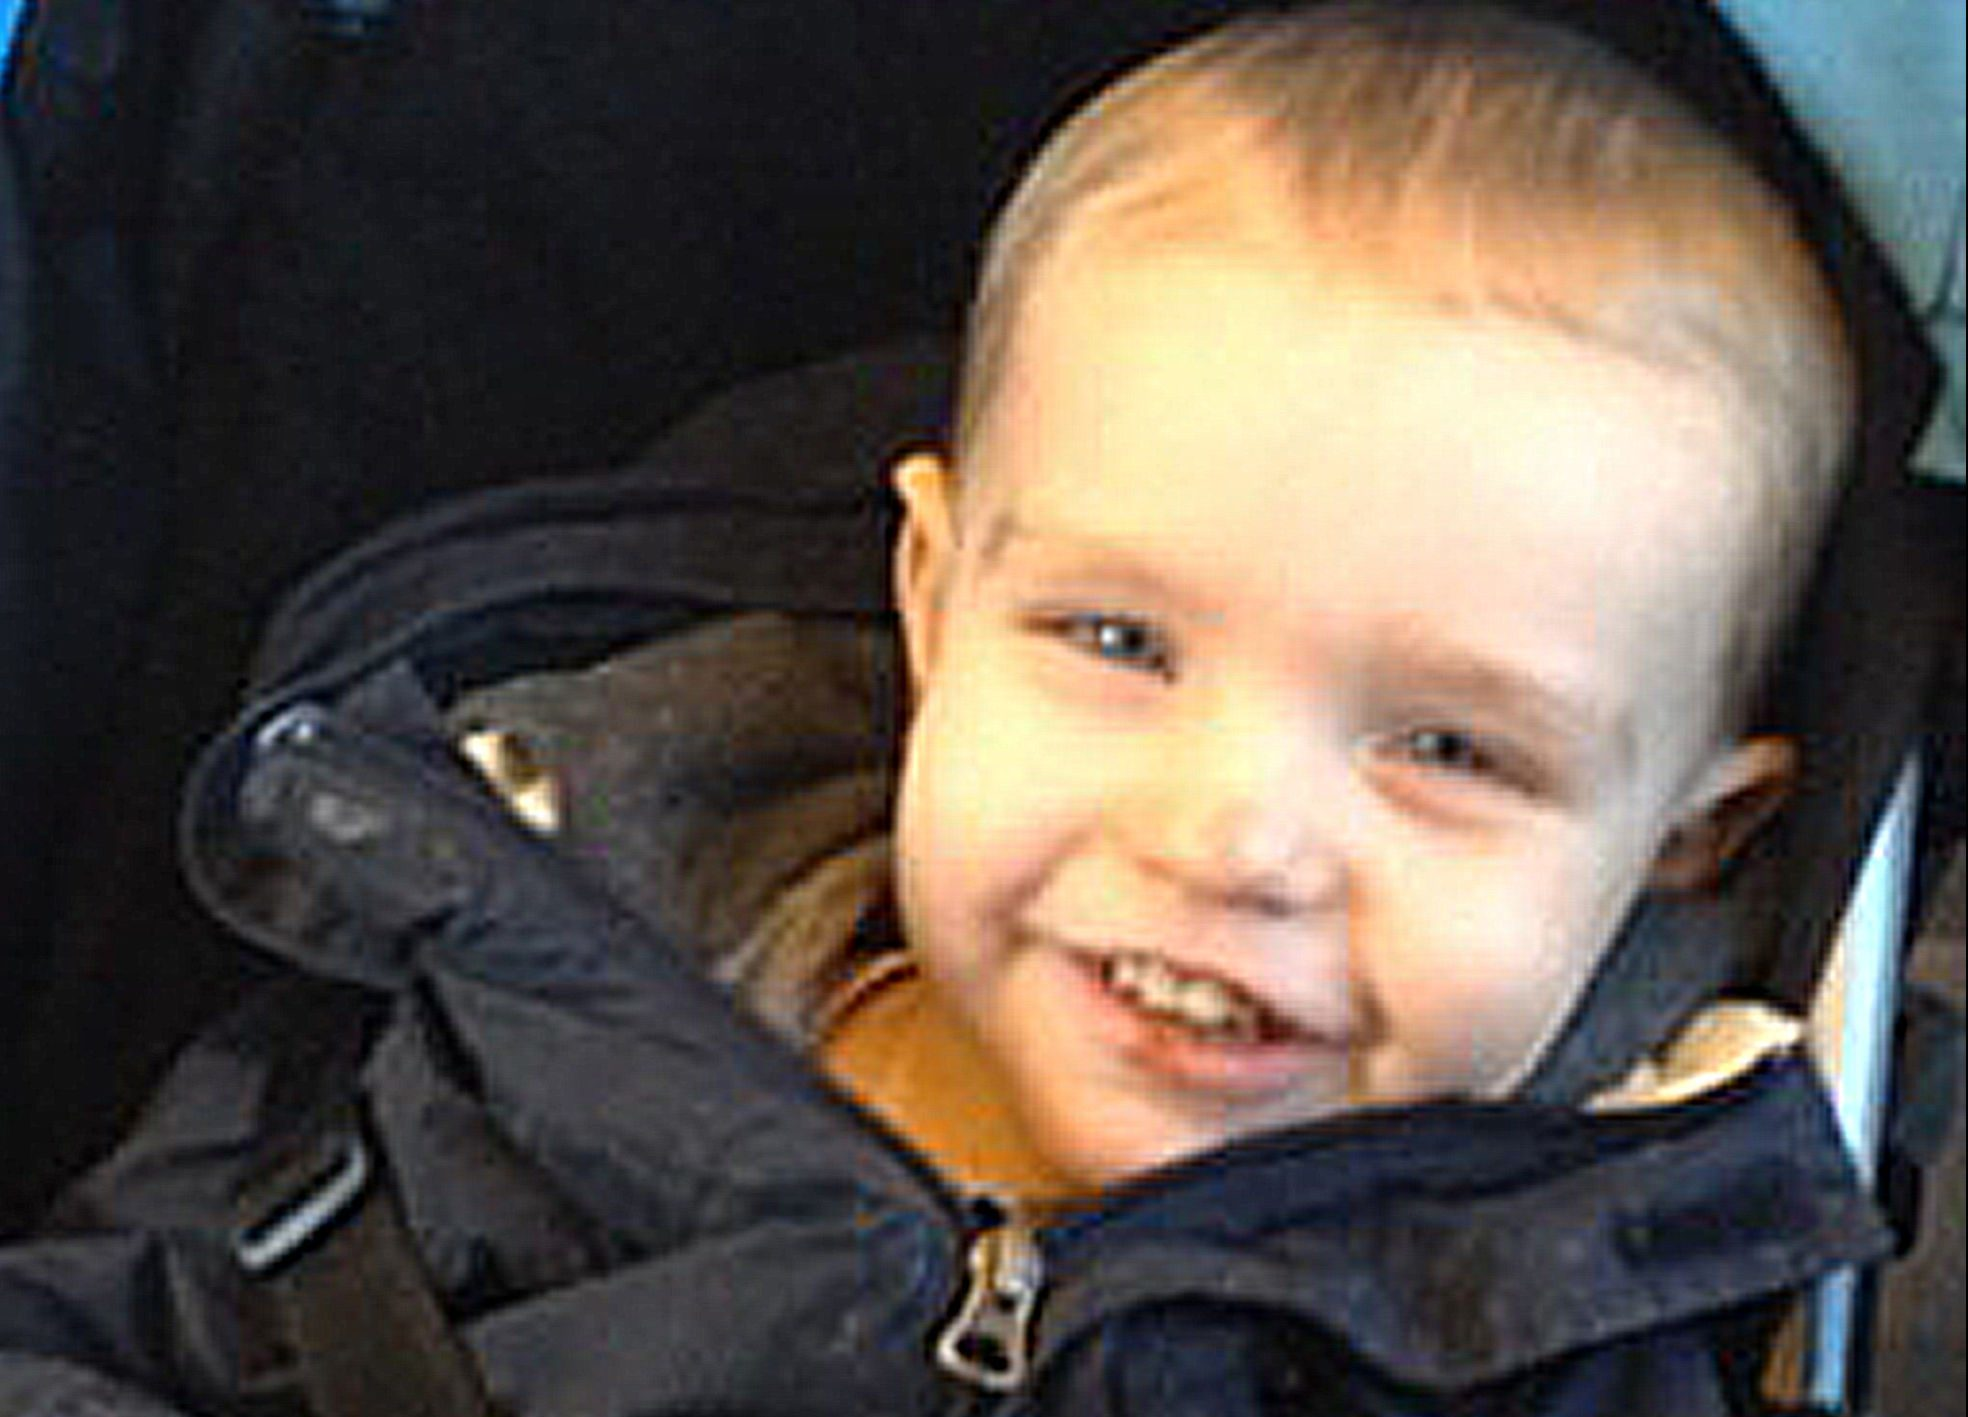 Two-year-old Liam Fee suffered physical and emotional abuse before his death.